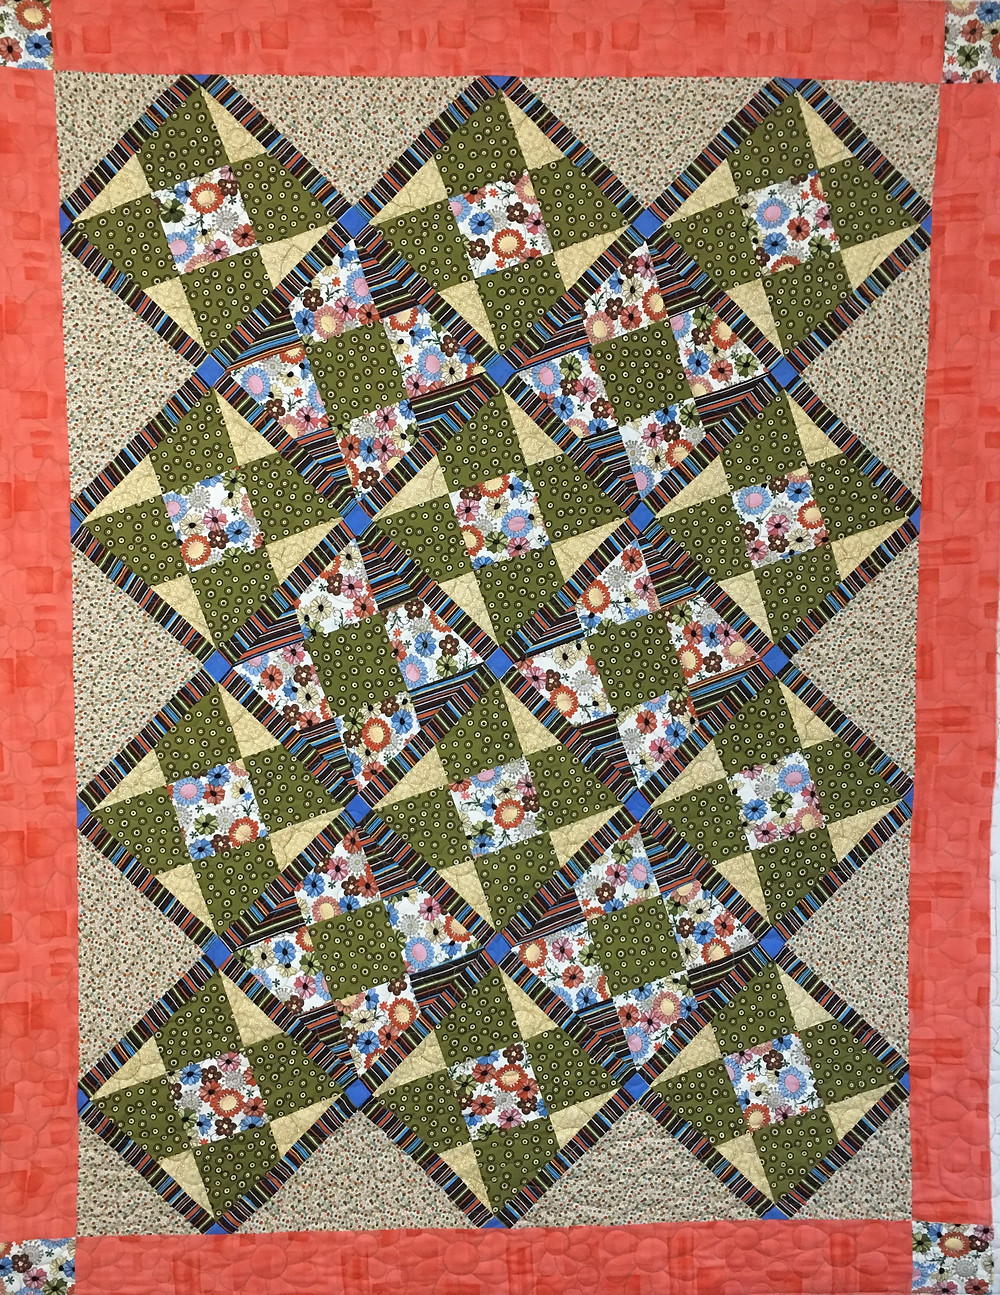 Nine Patch Quilt by Cynthia Parra